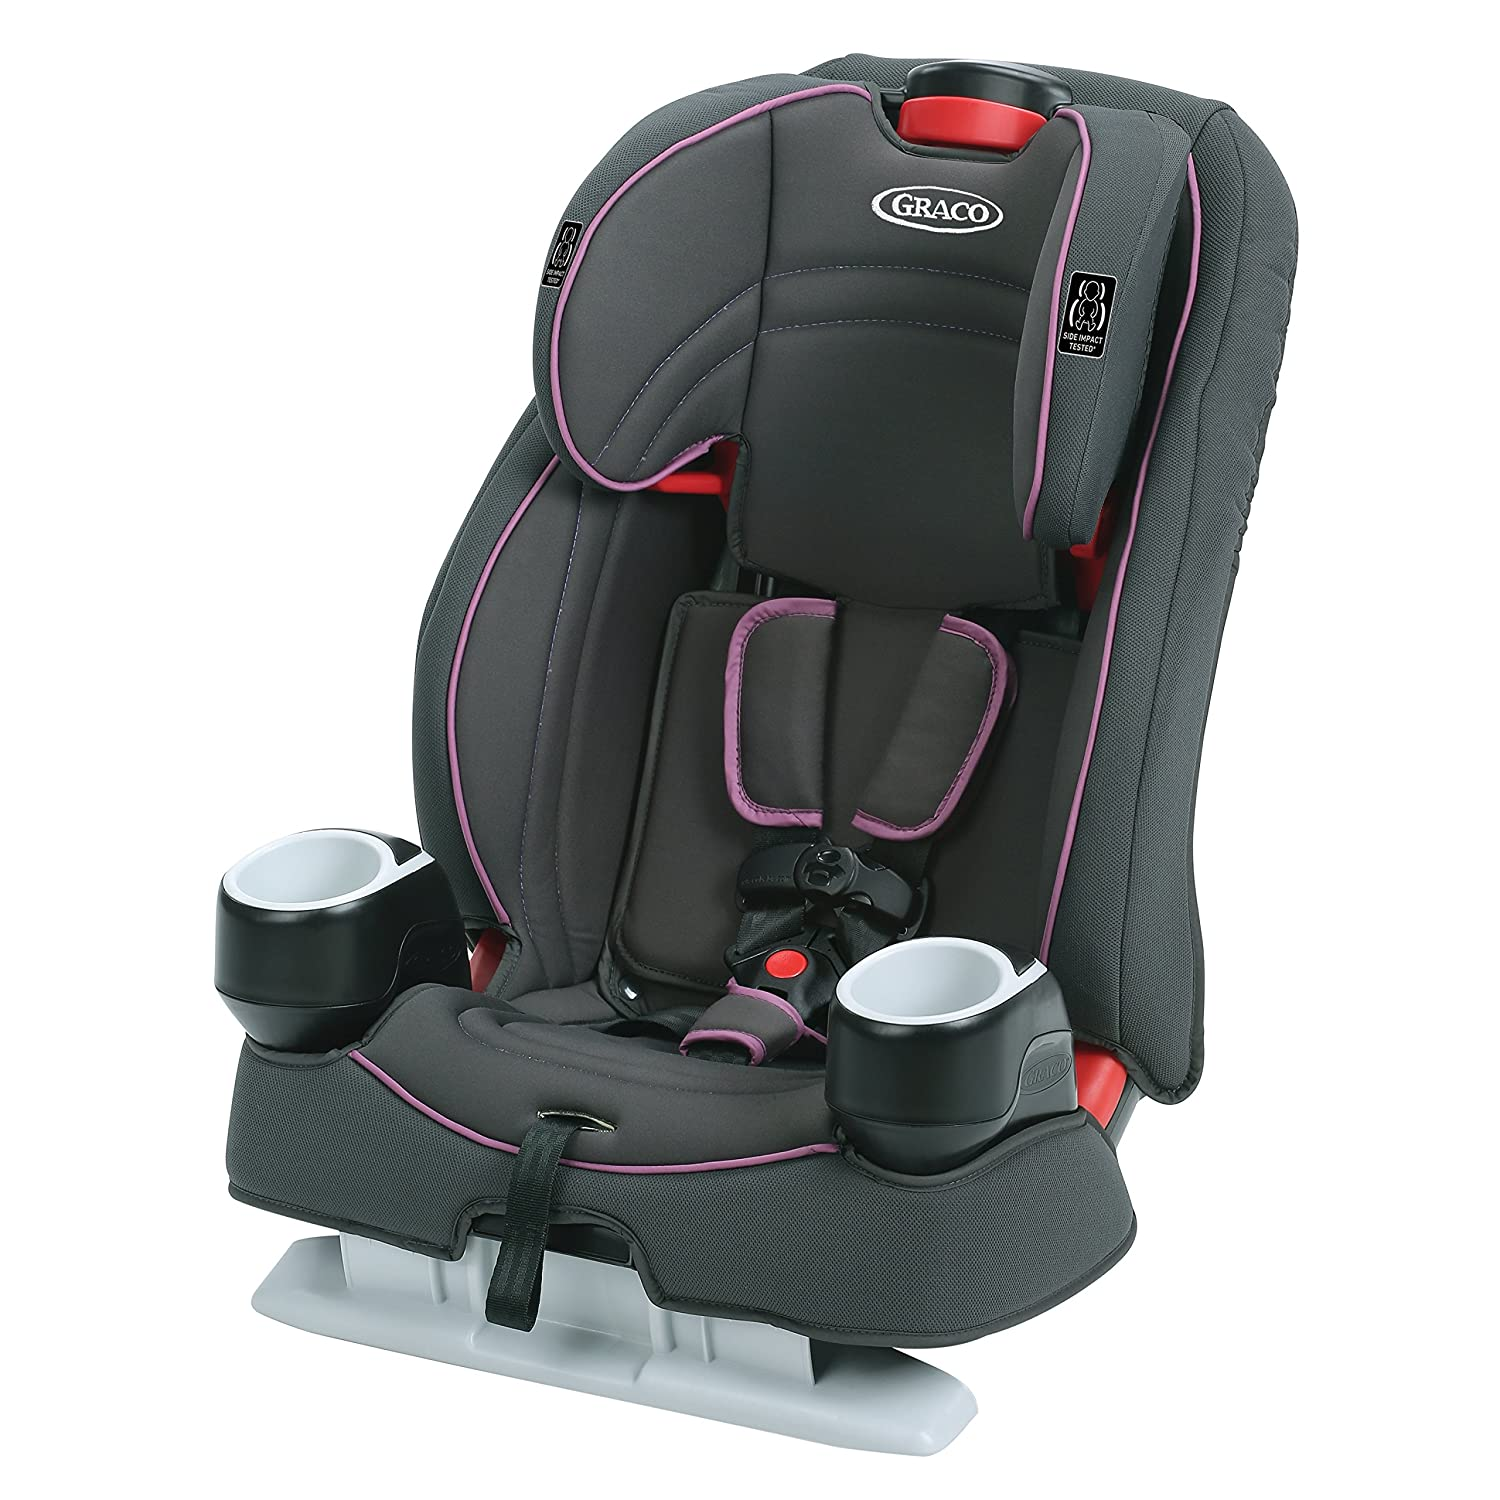 Graco Atlas 65 2 in 1 Harness Booster Seat | Harness Booster and High Back Booster in One, Nyssa